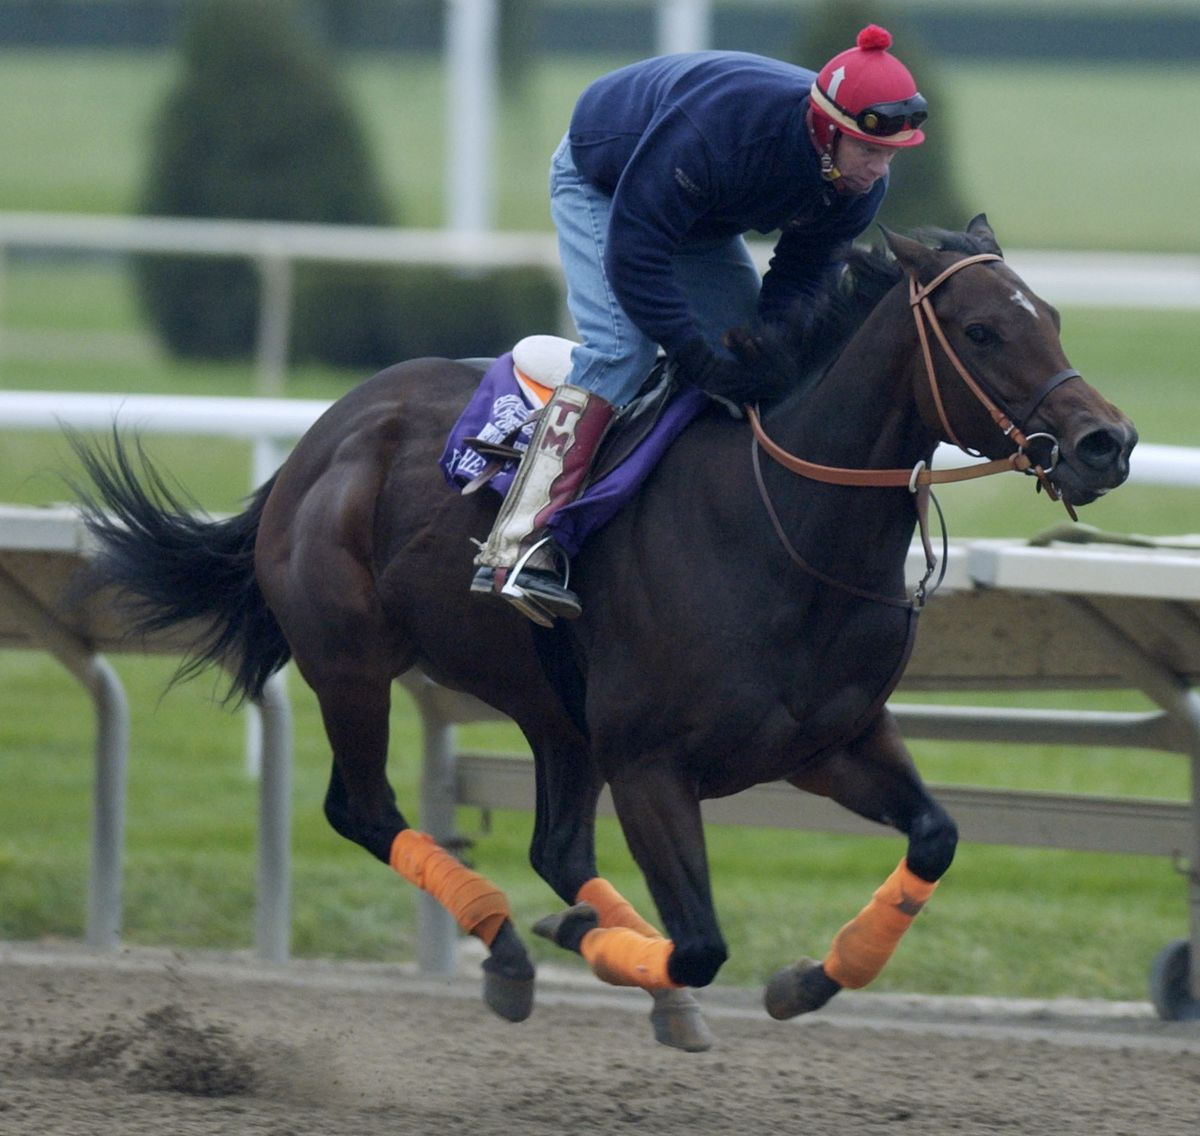 Workouts for the Breeders' Cup at Arlington International Racecourse in 2002.